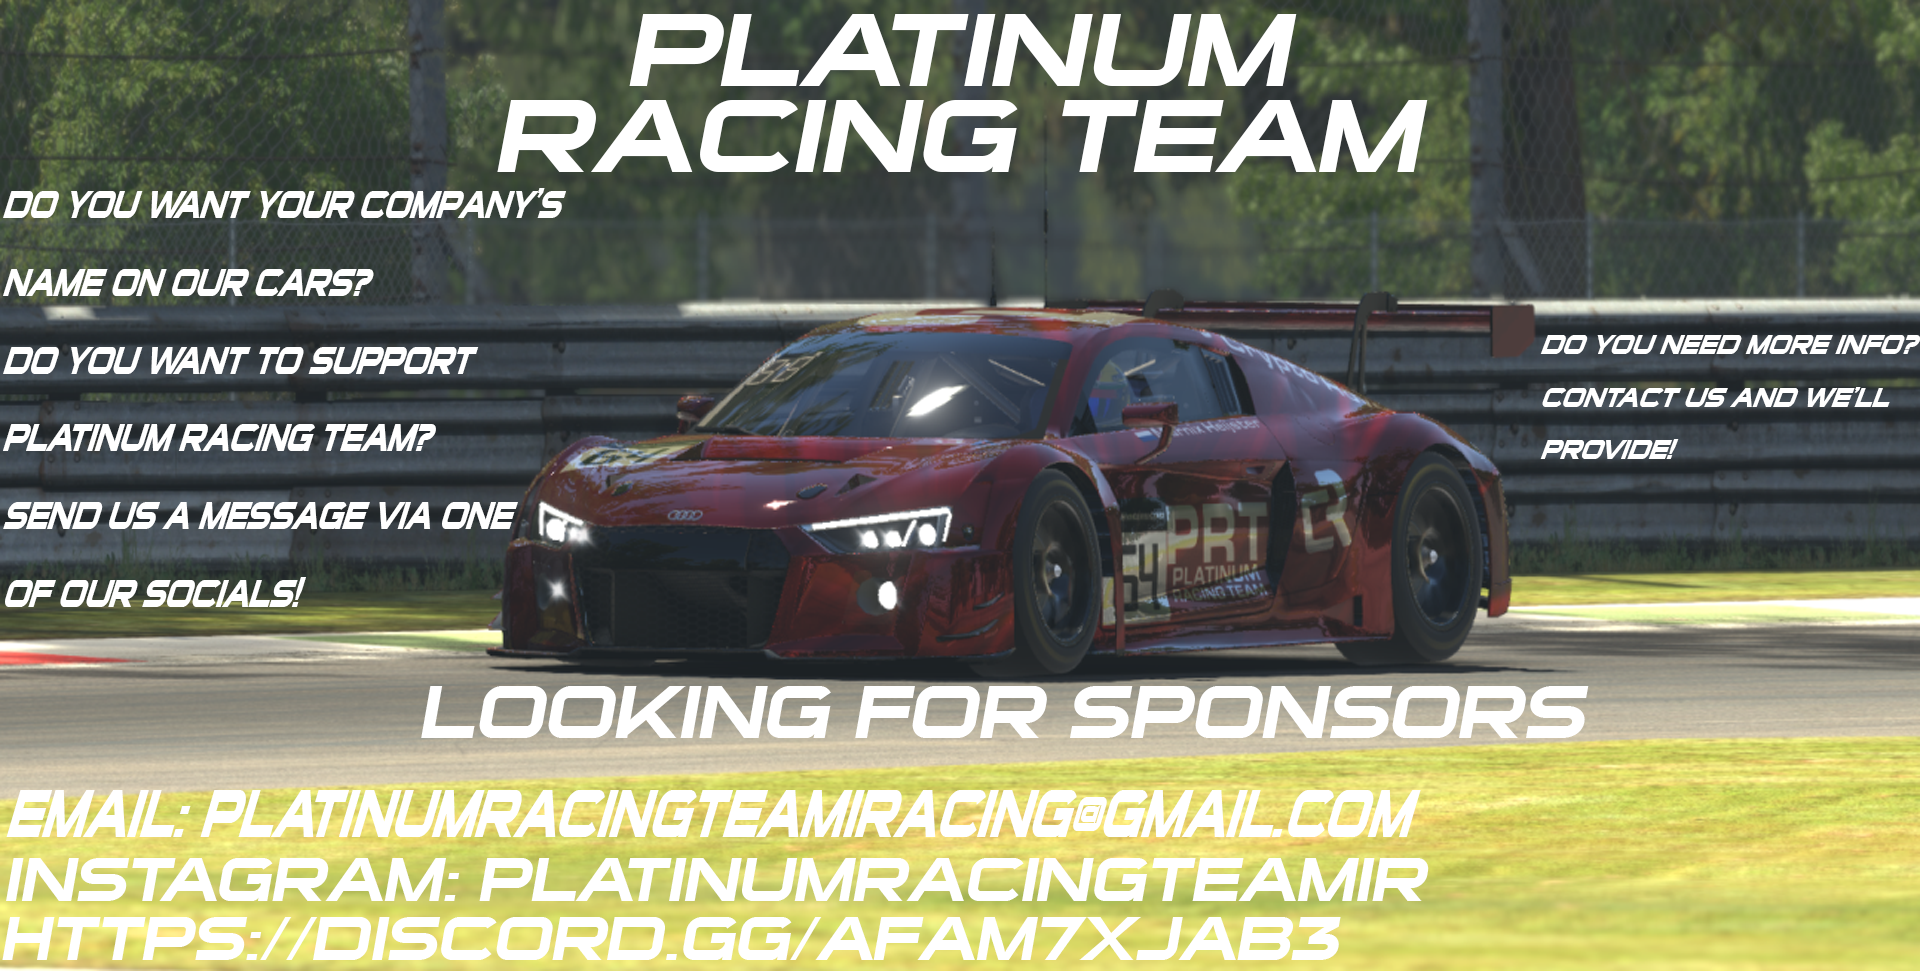 looking for sponsors 1.png